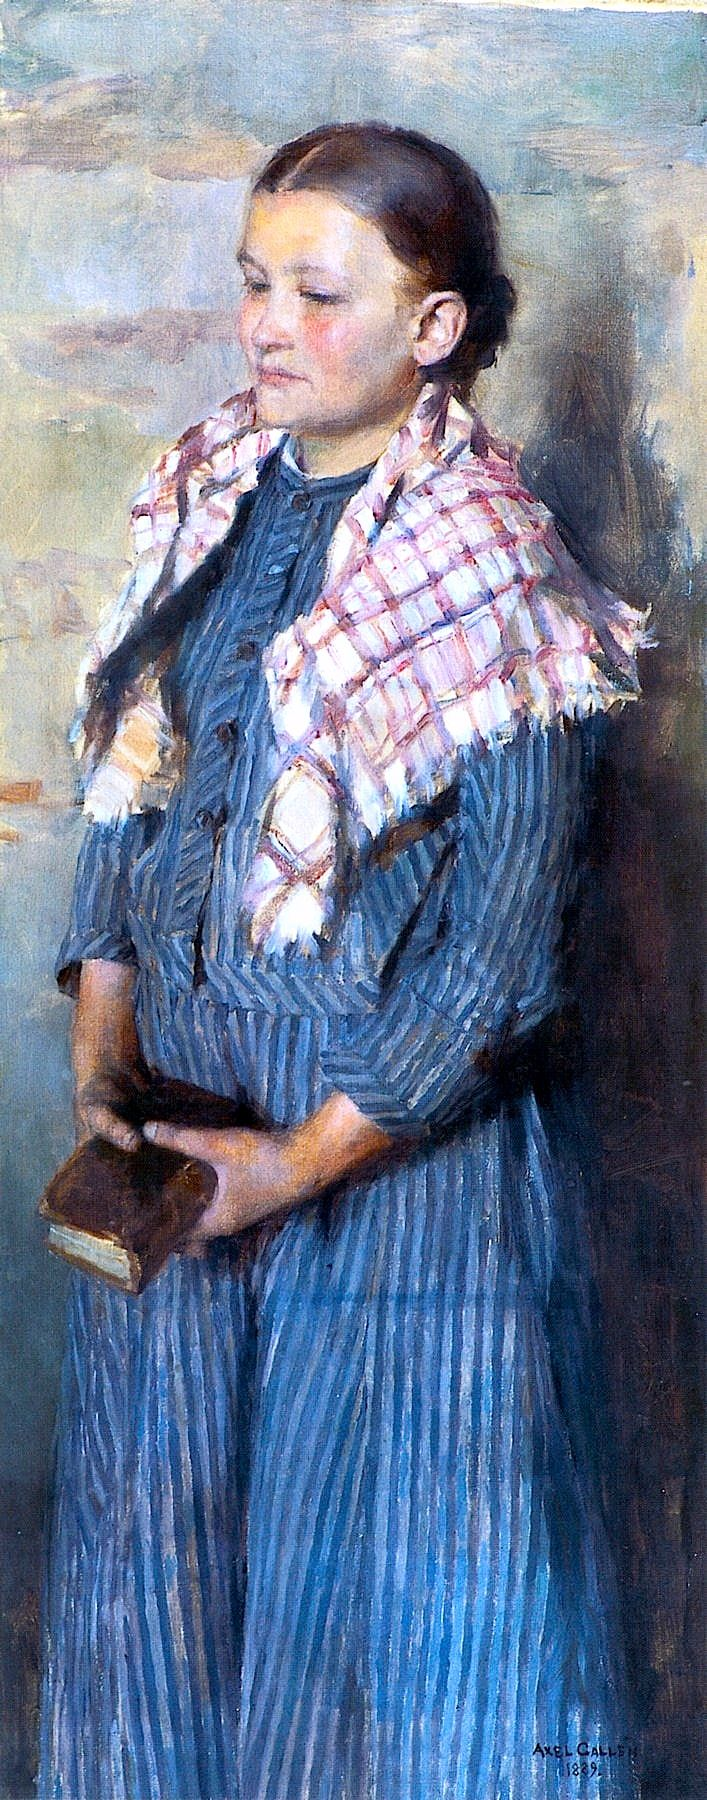 AKSELI GALLEN-KALLELA Church Girl (1889)